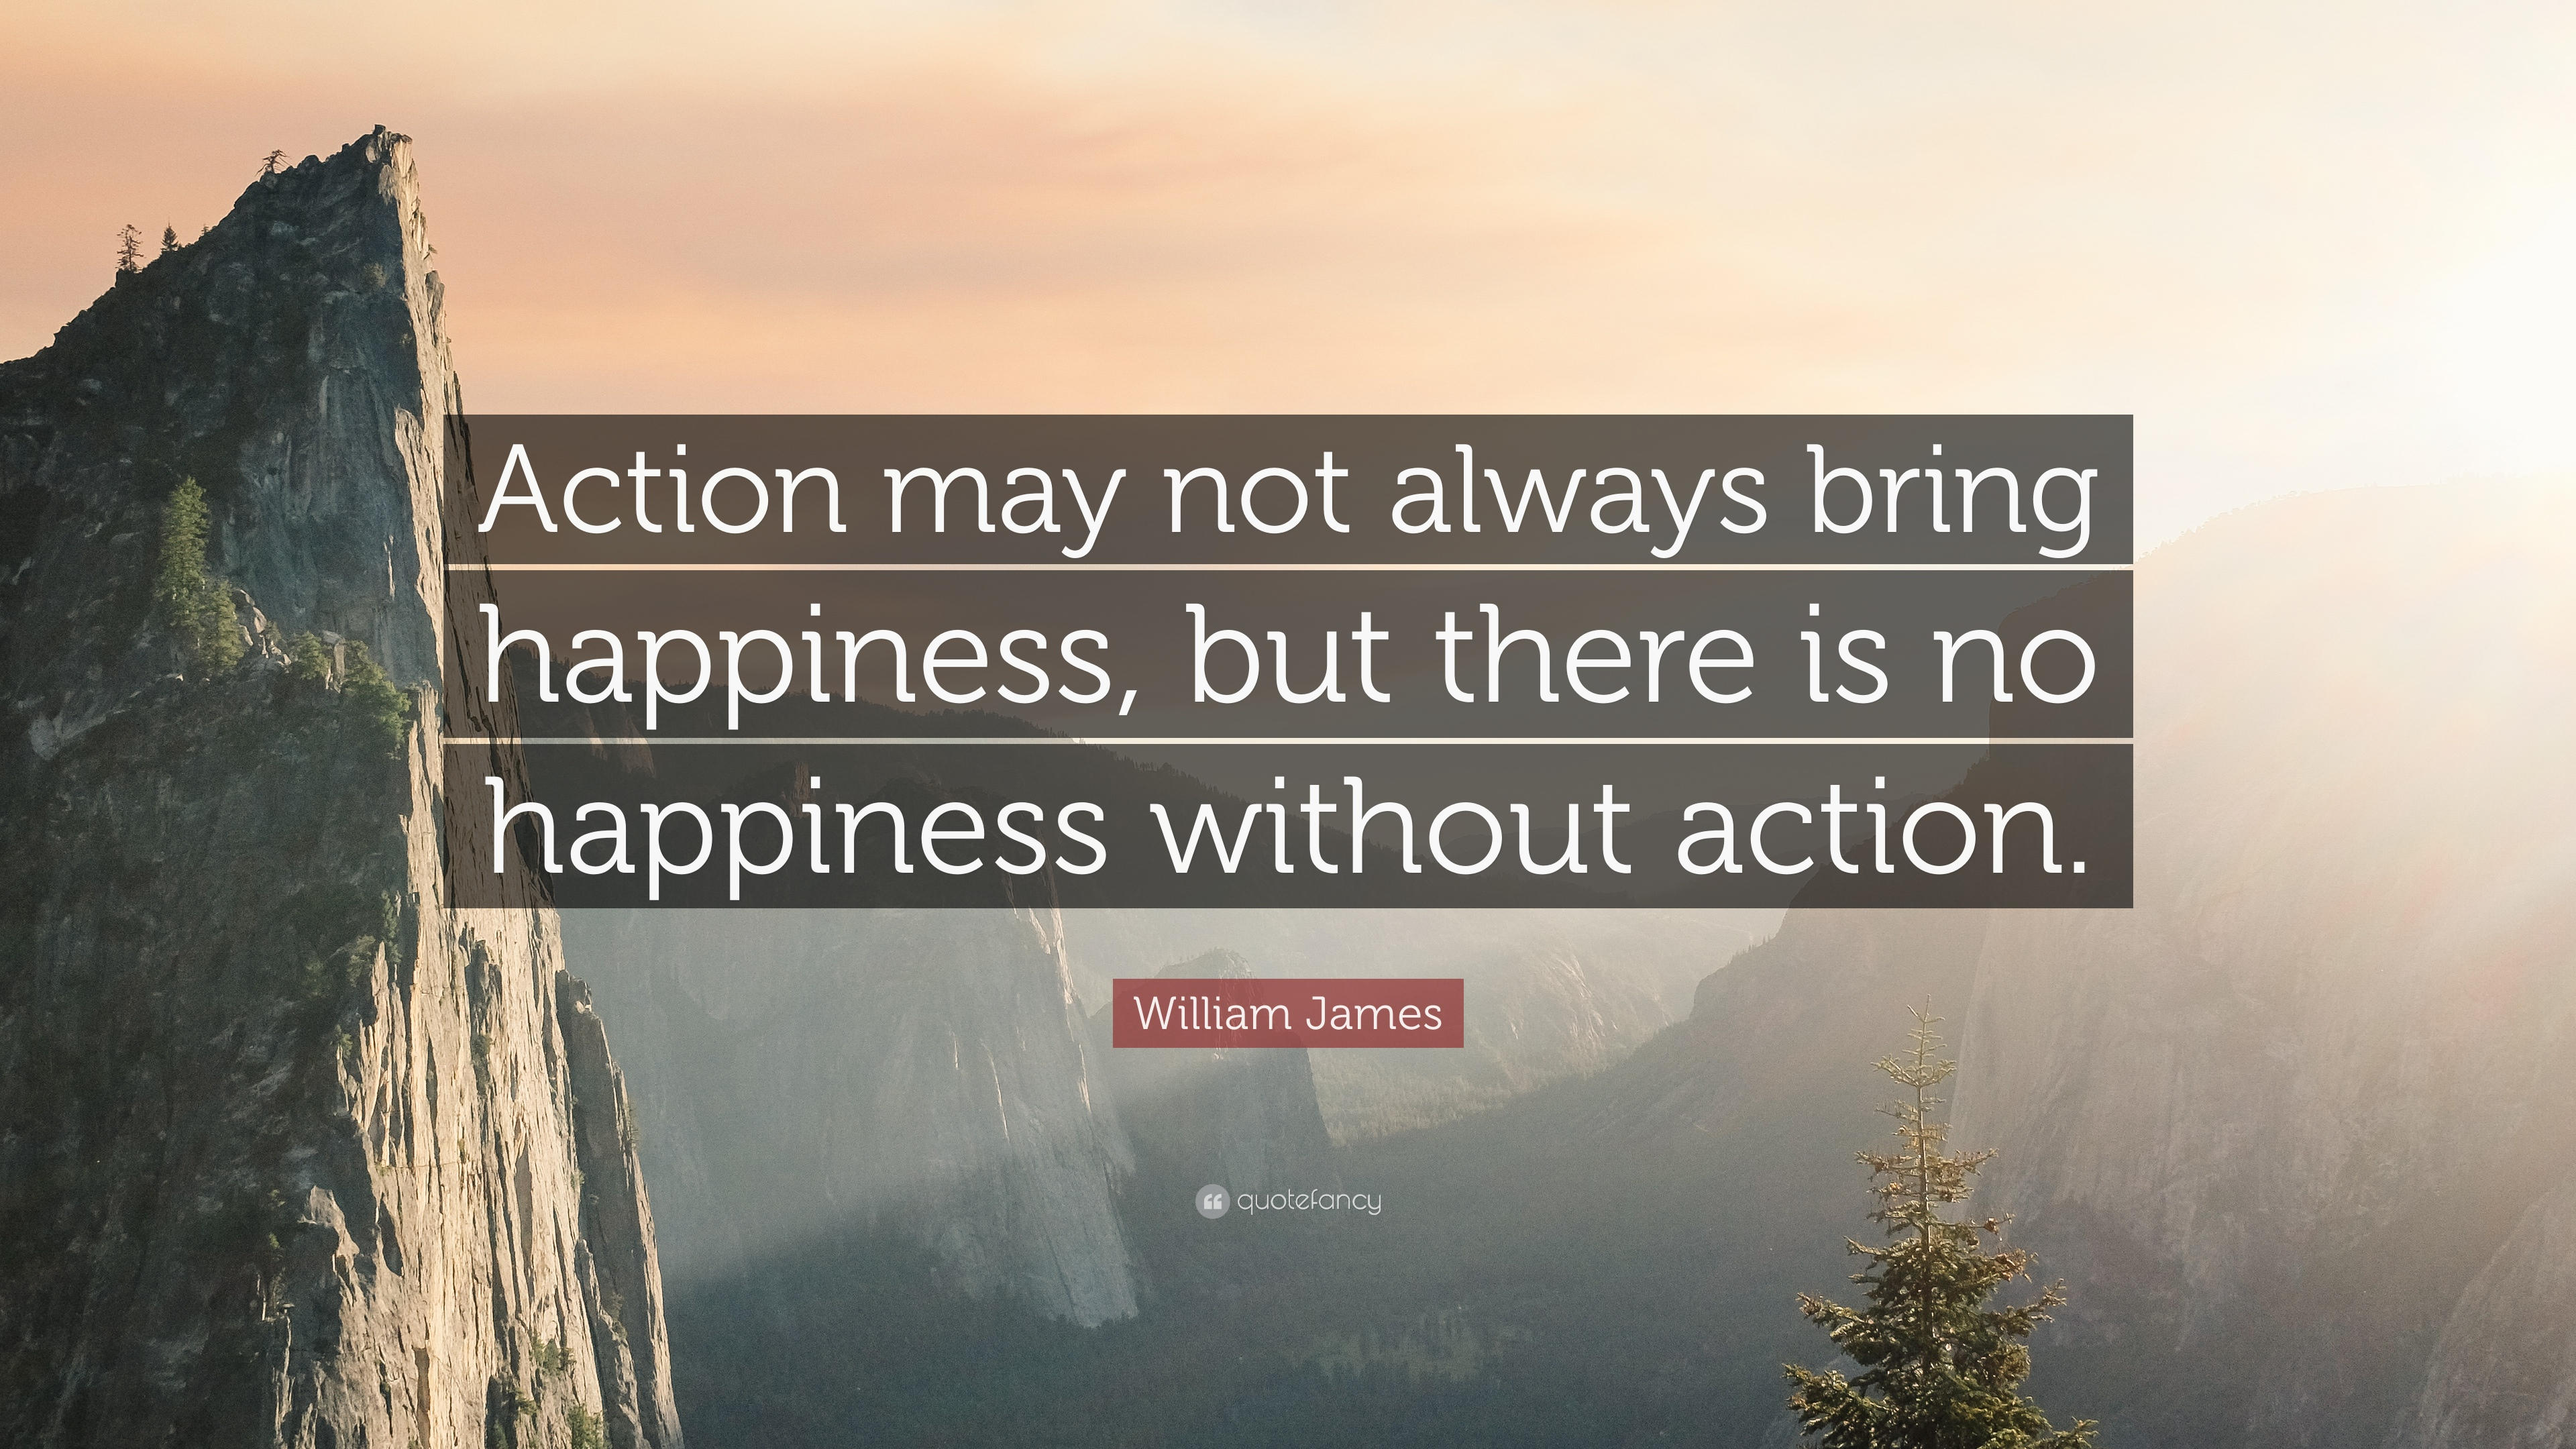 10 Actions that Always Bring Happiness